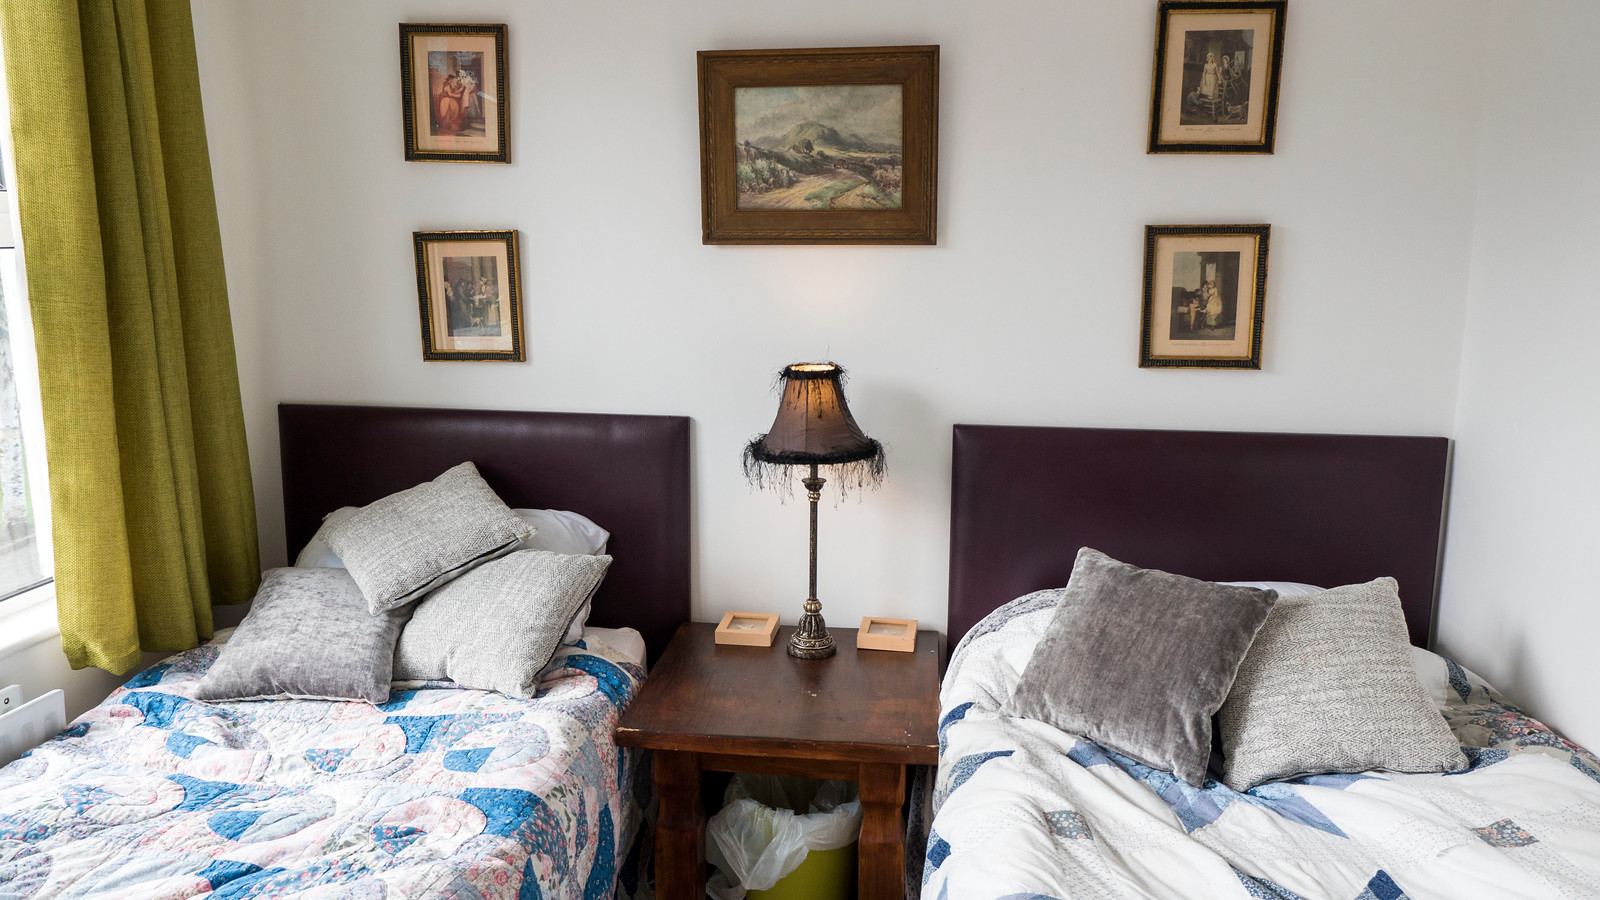 Limerick Airbnb | Where to Stay in Limerick Ireland